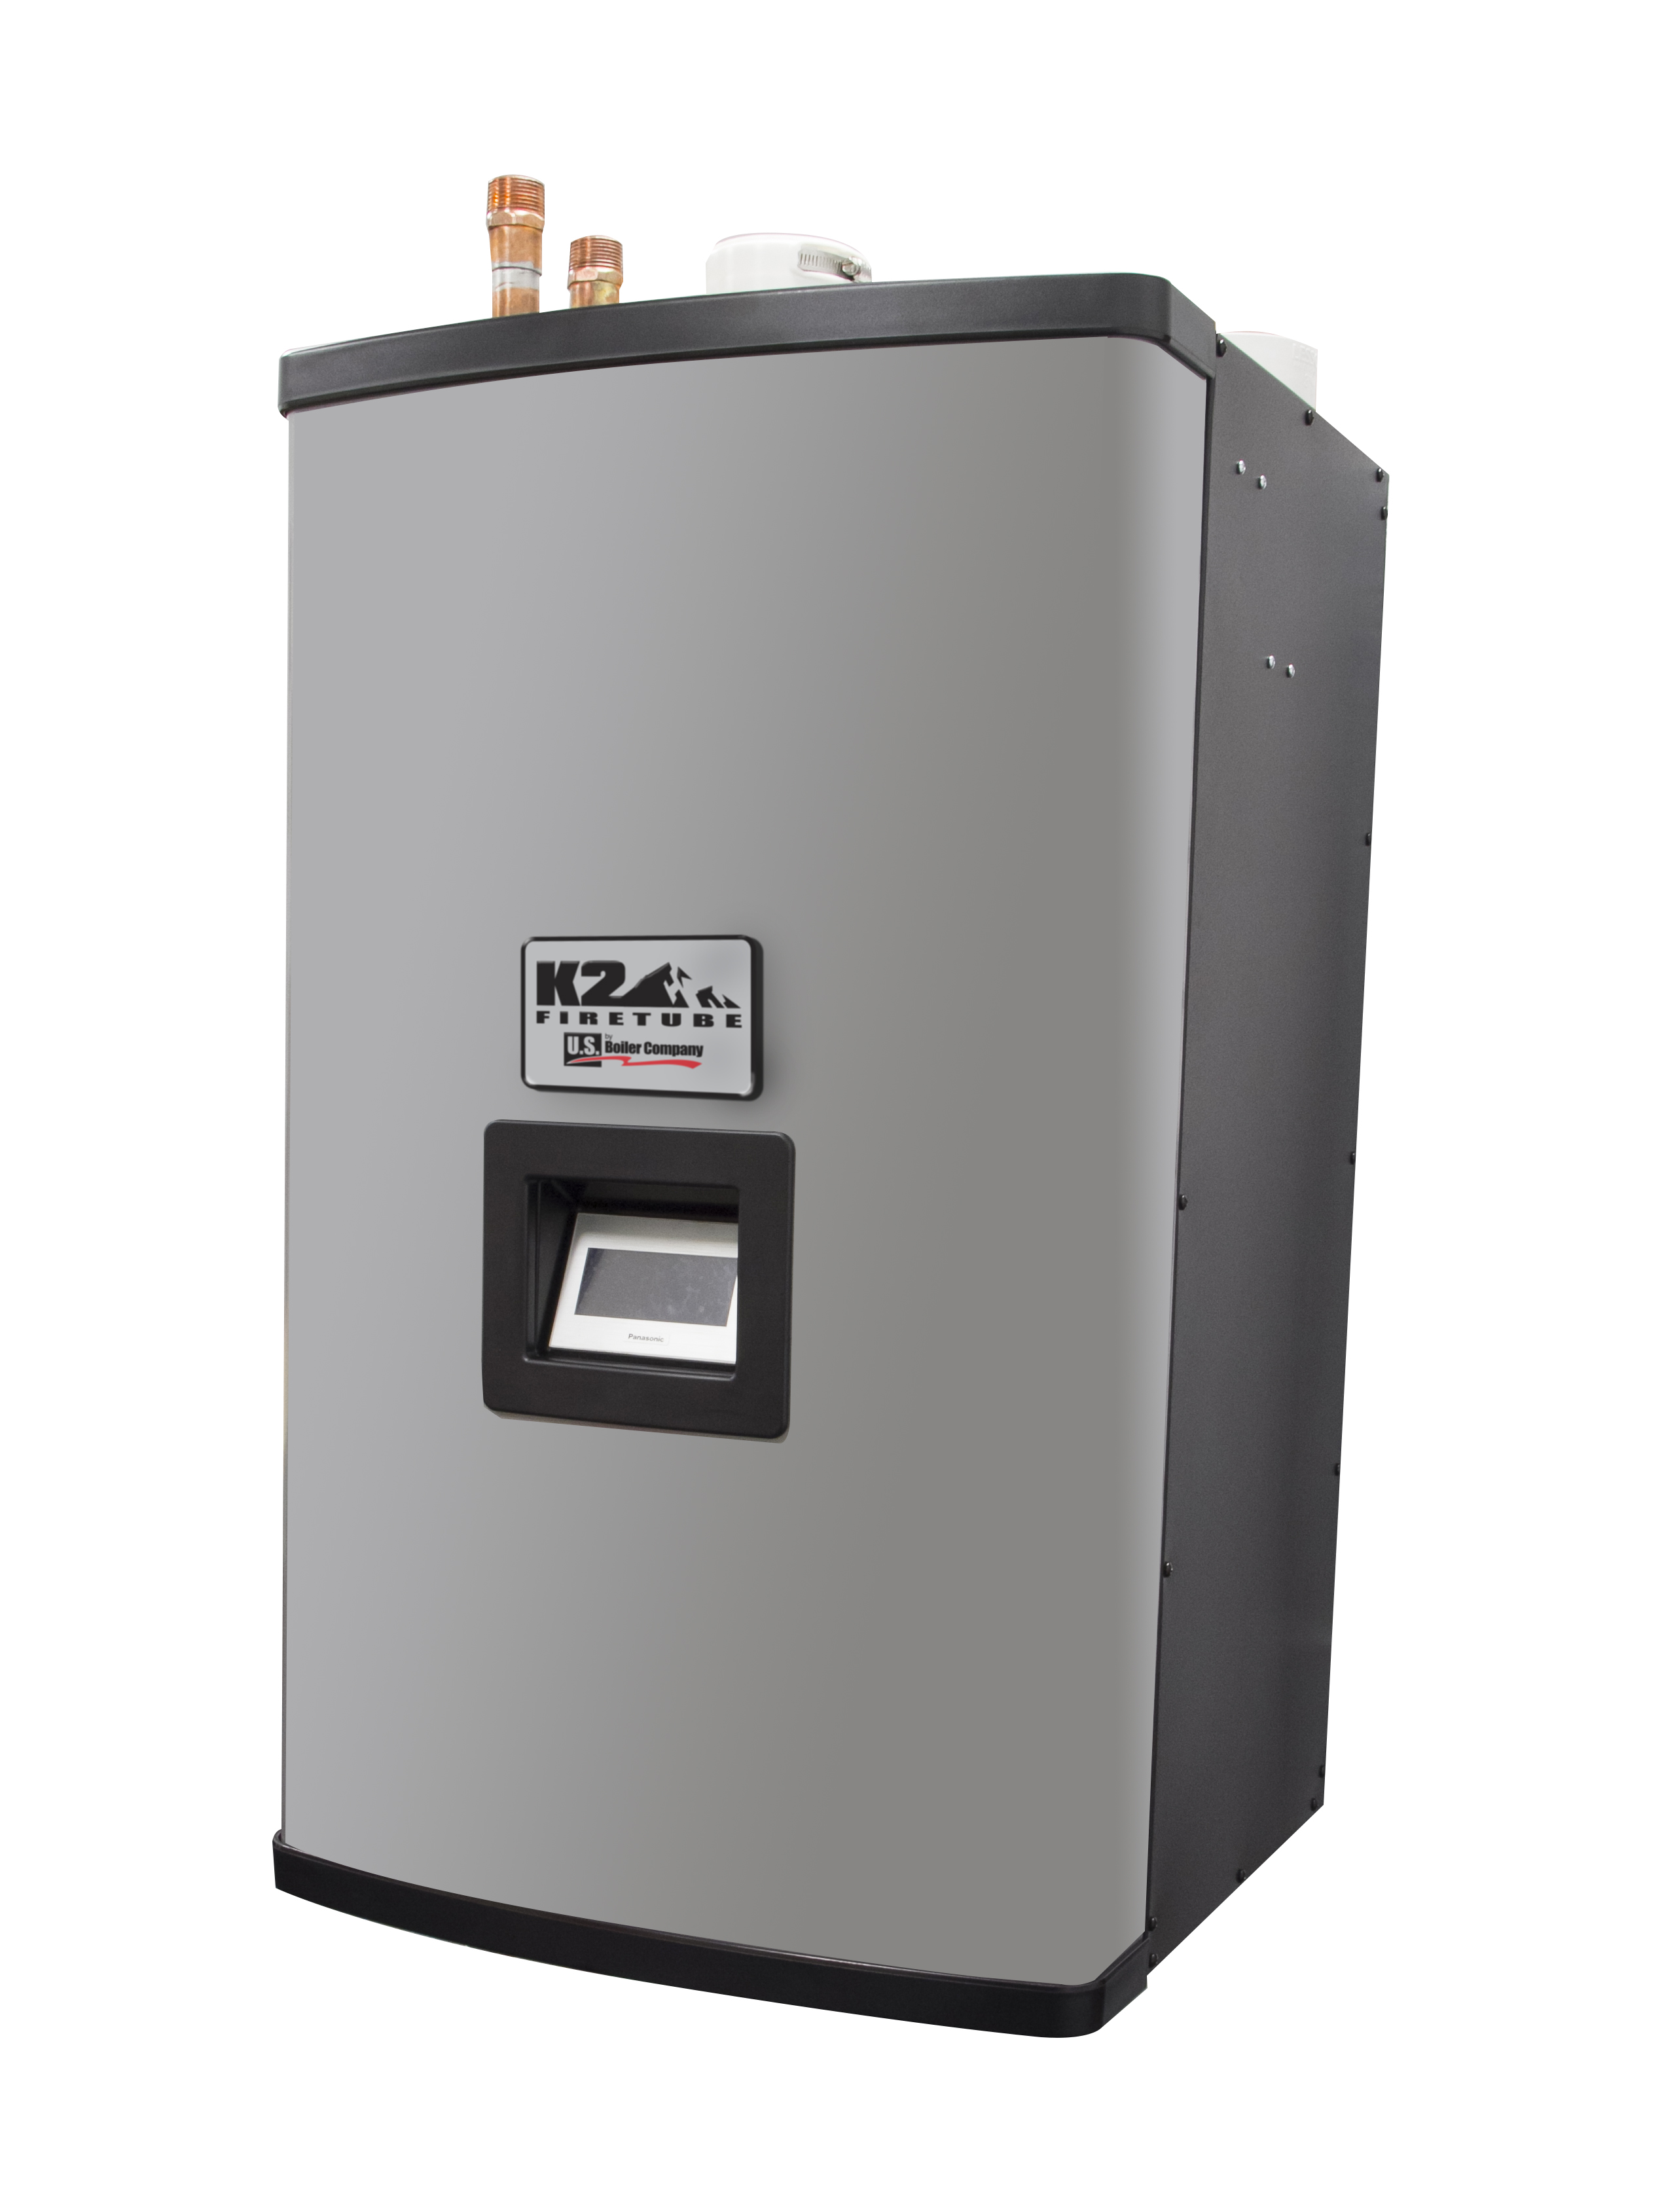 medium resolution of the new k2 firetube boiler is the newest addition to u s boiler co s k2 high efficiency series joining the k2 watertube boiler the 95 percent afue k2